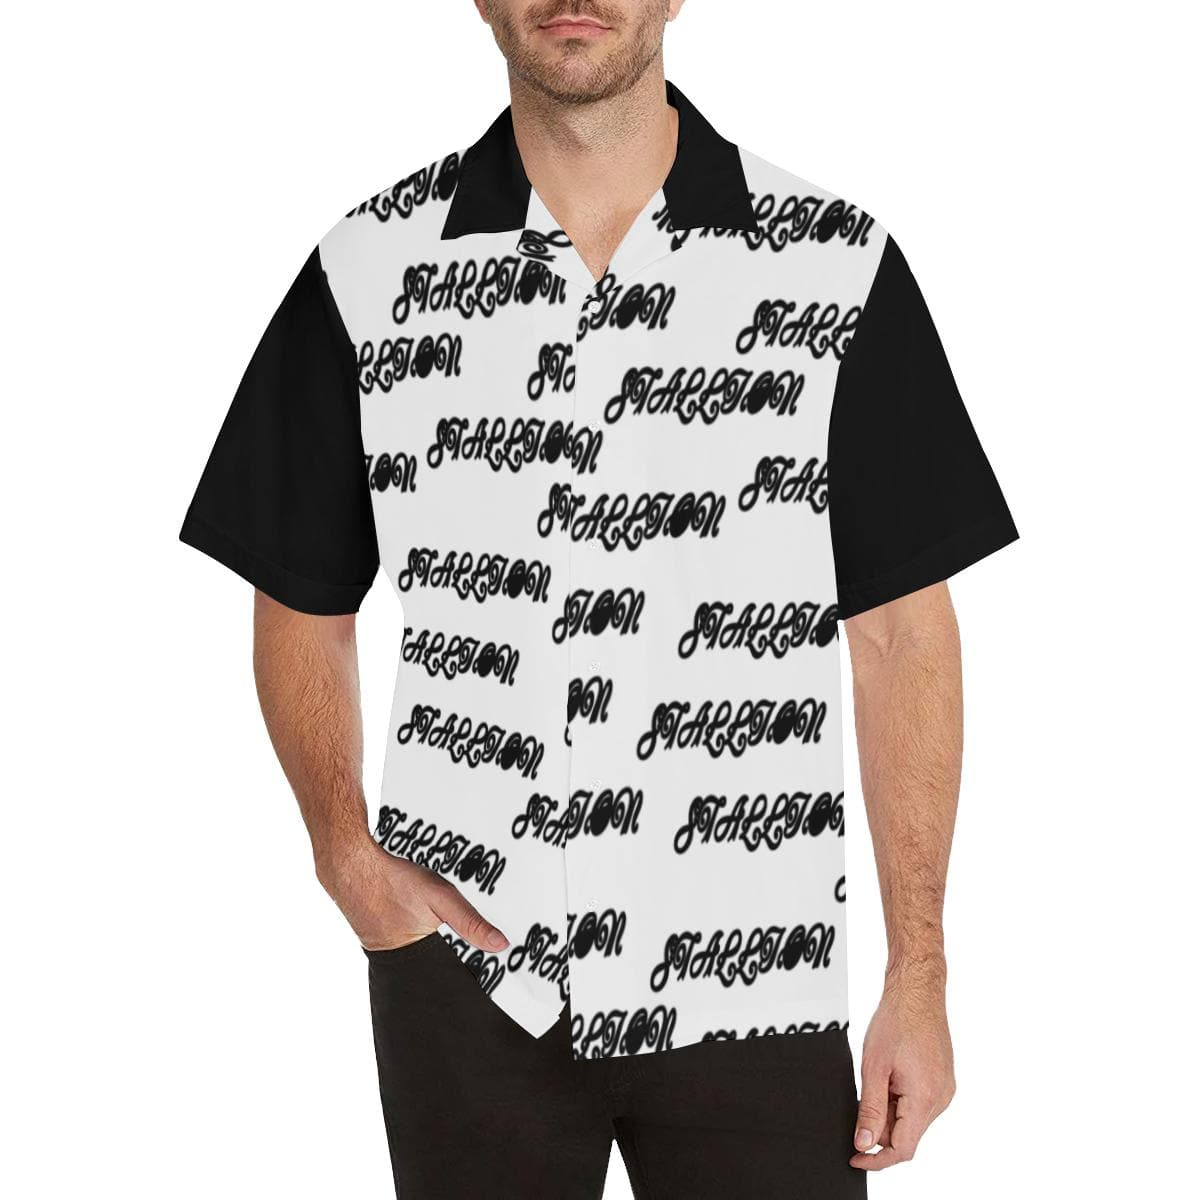 Stallion Clothing for Men Button-Up Various Styles Voluptuous (+) Size Available - TFC&H Co.